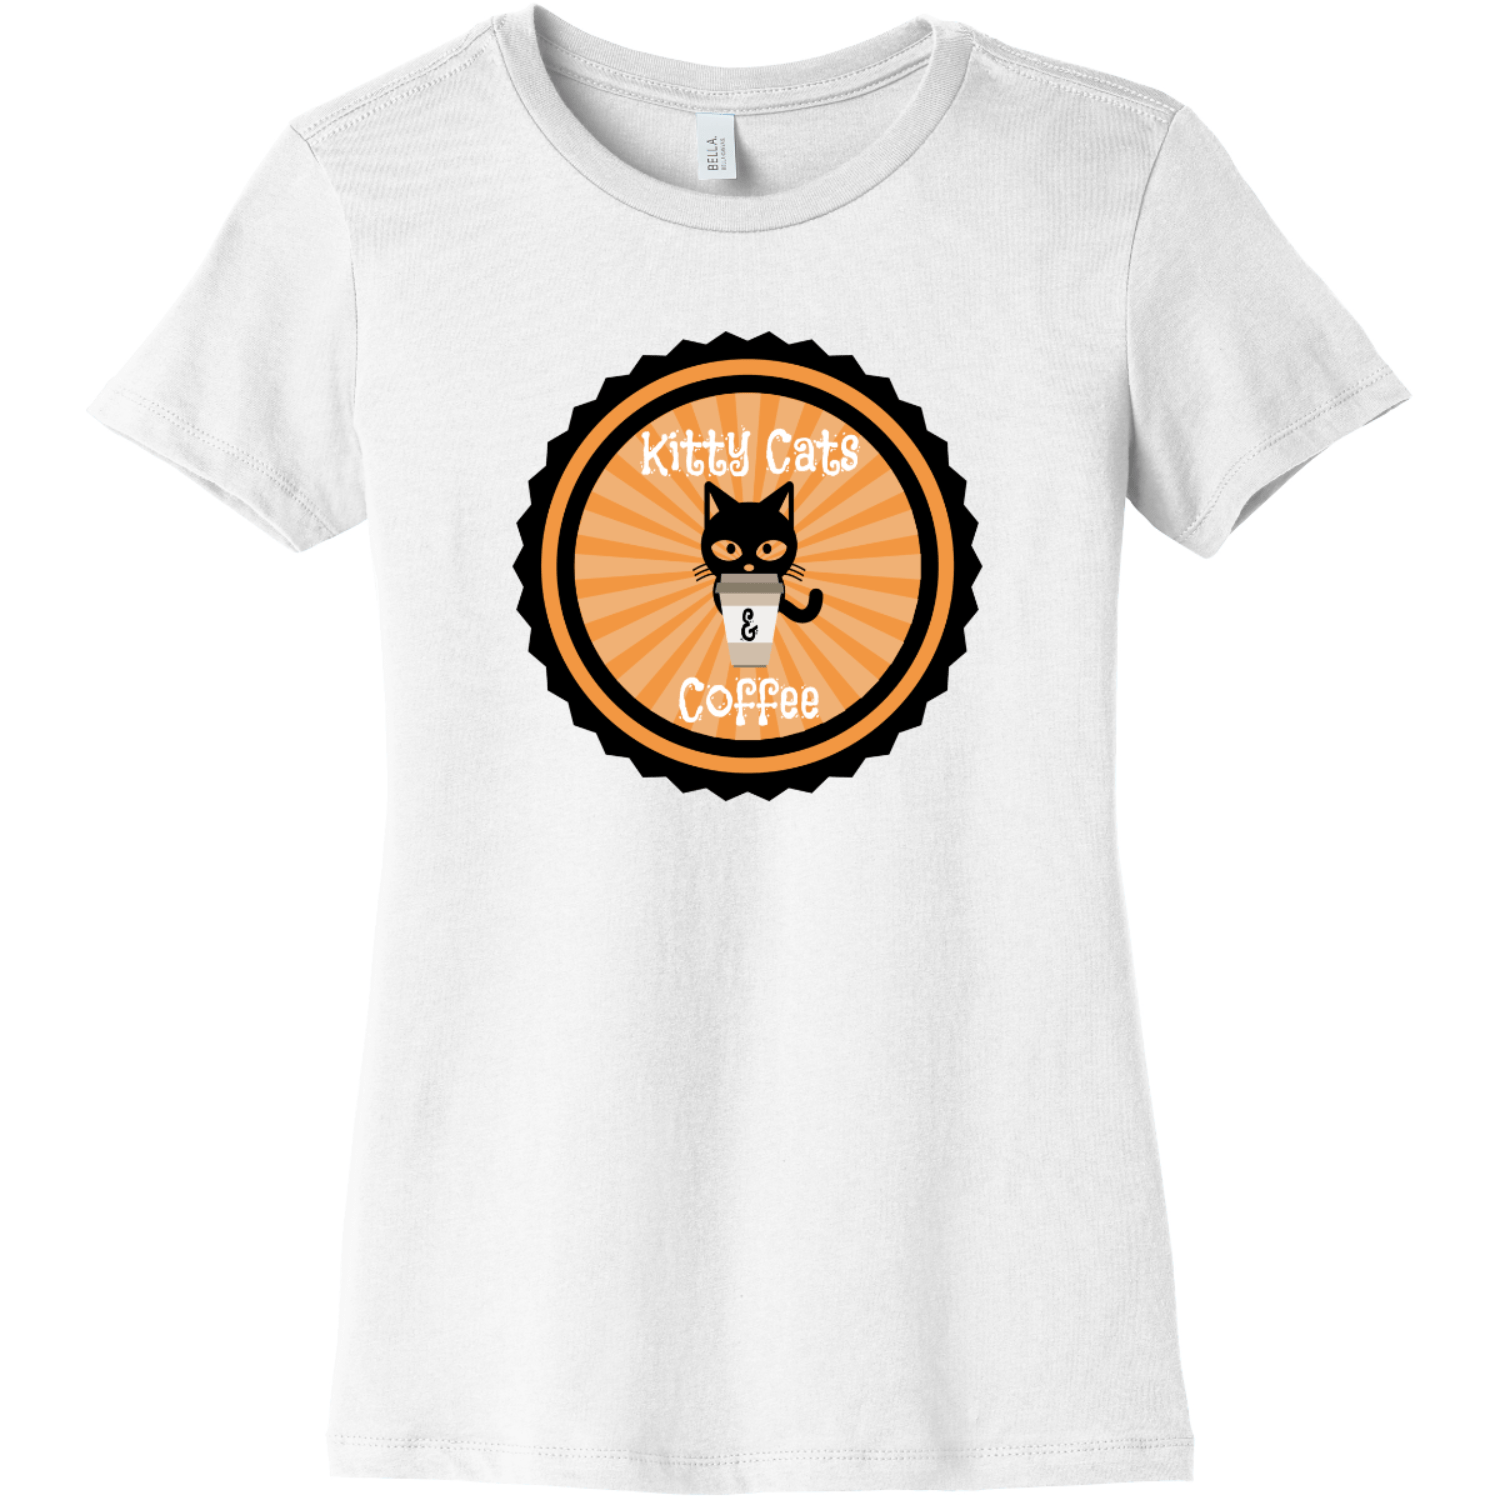 Kitty Cats and Coffee Ladies T Shirt White Bella Canvas 6004 Ladies The Favorite Tee